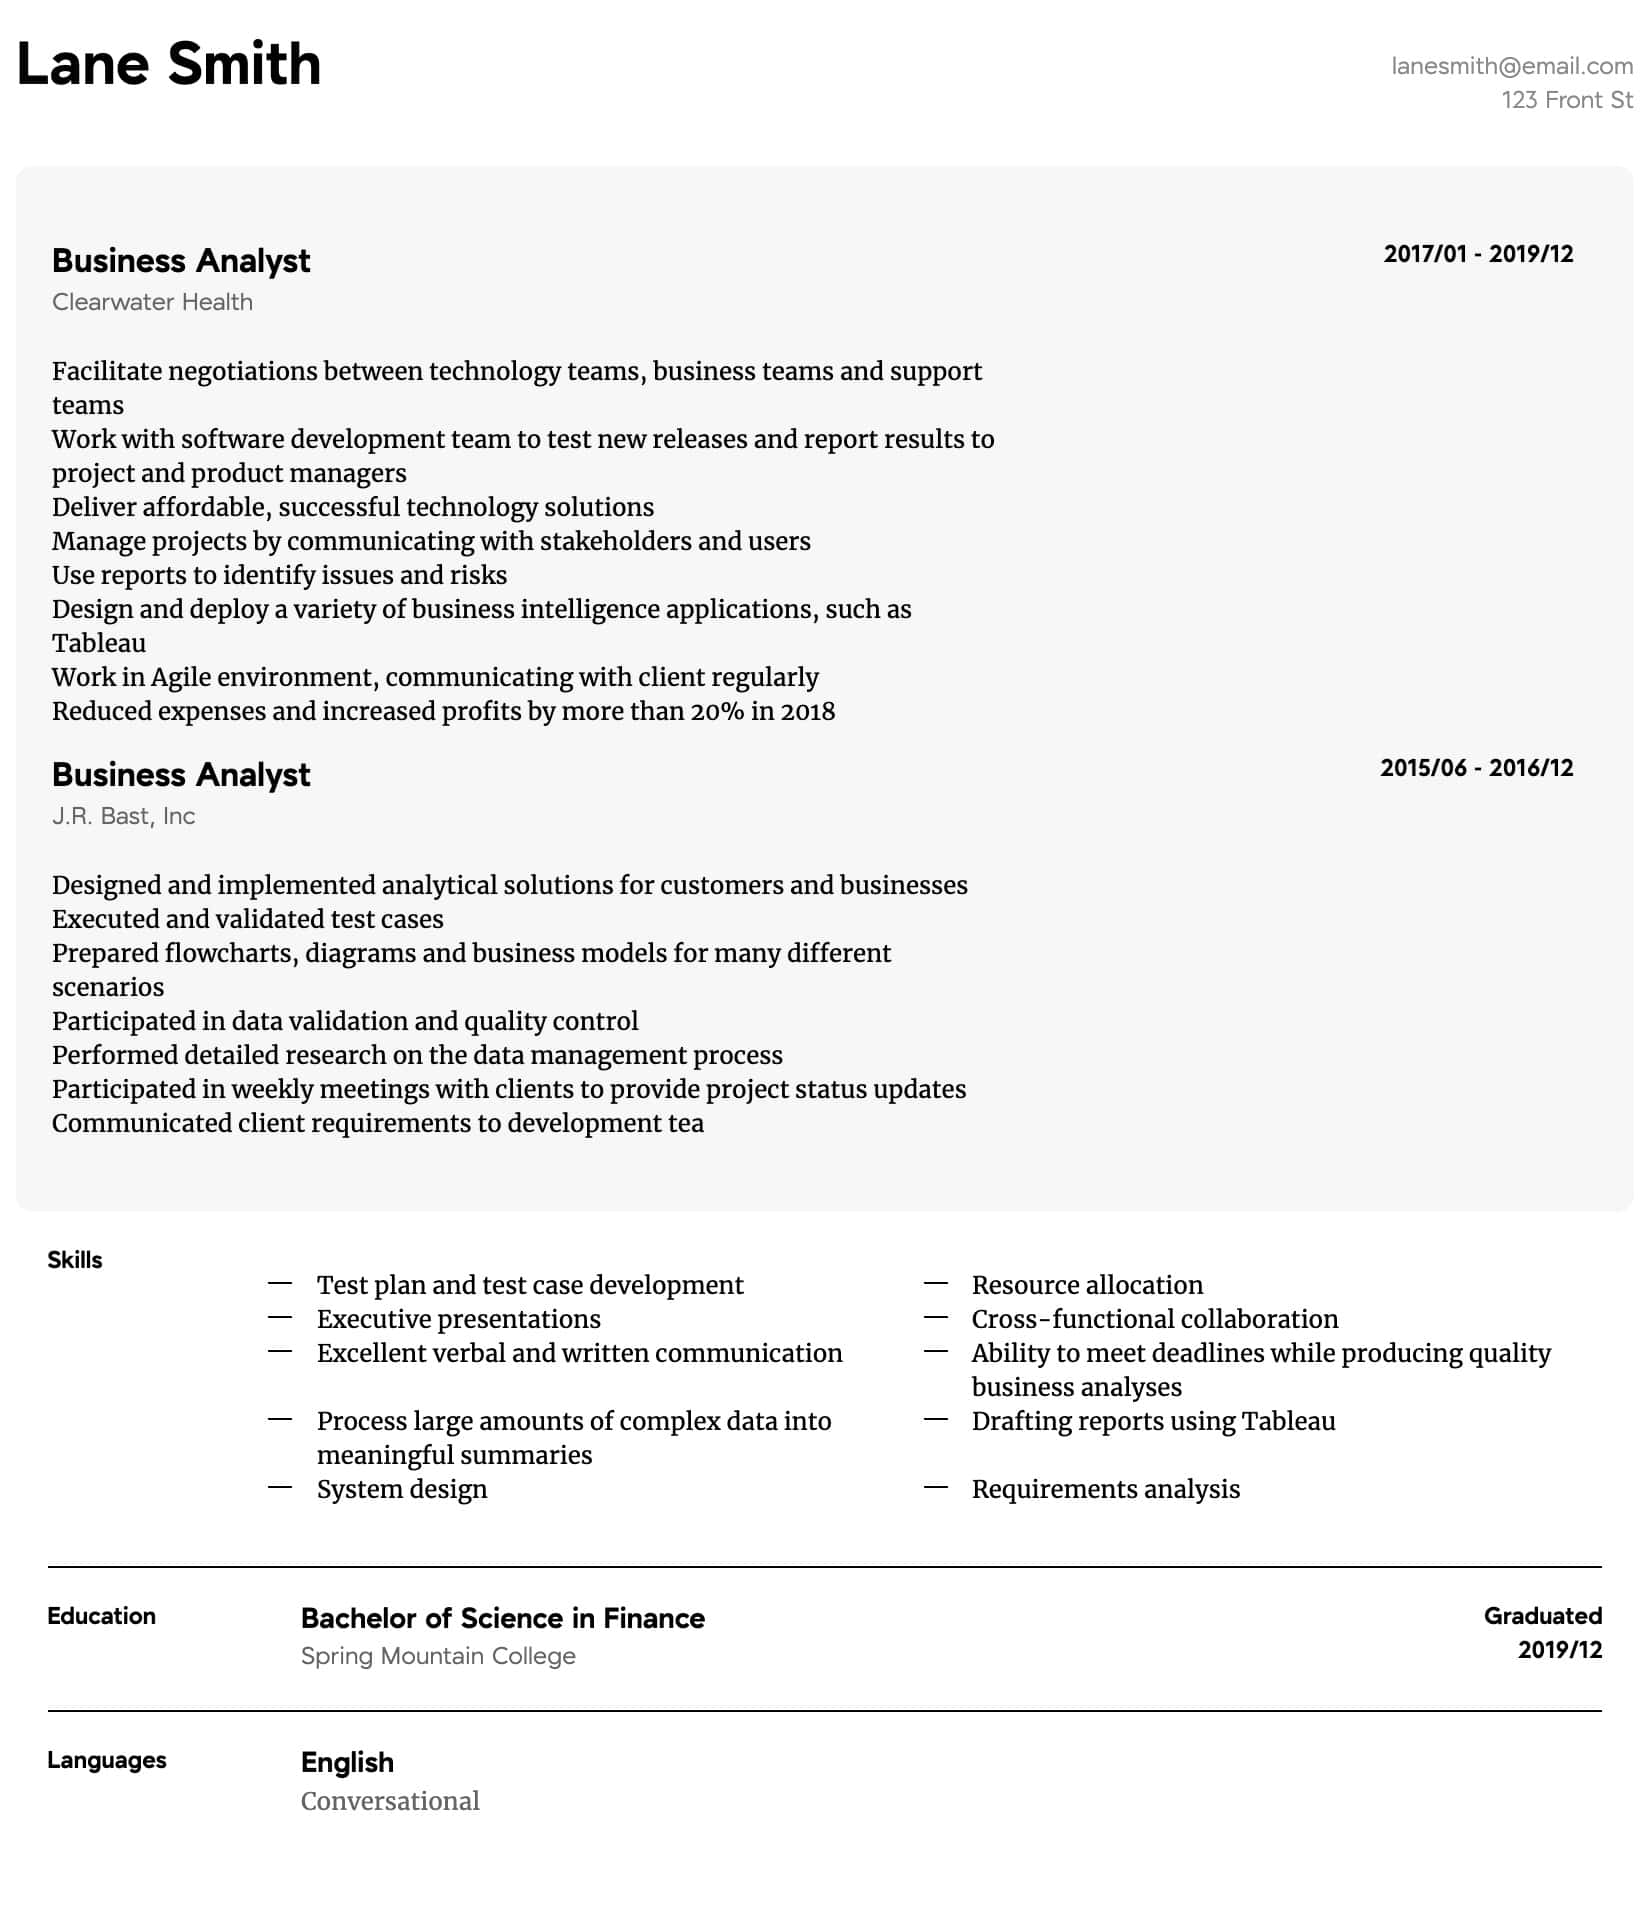 business analyst resume samples all experience levels entry level indeed intermediate Resume Entry Level Business Analyst Resume Indeed